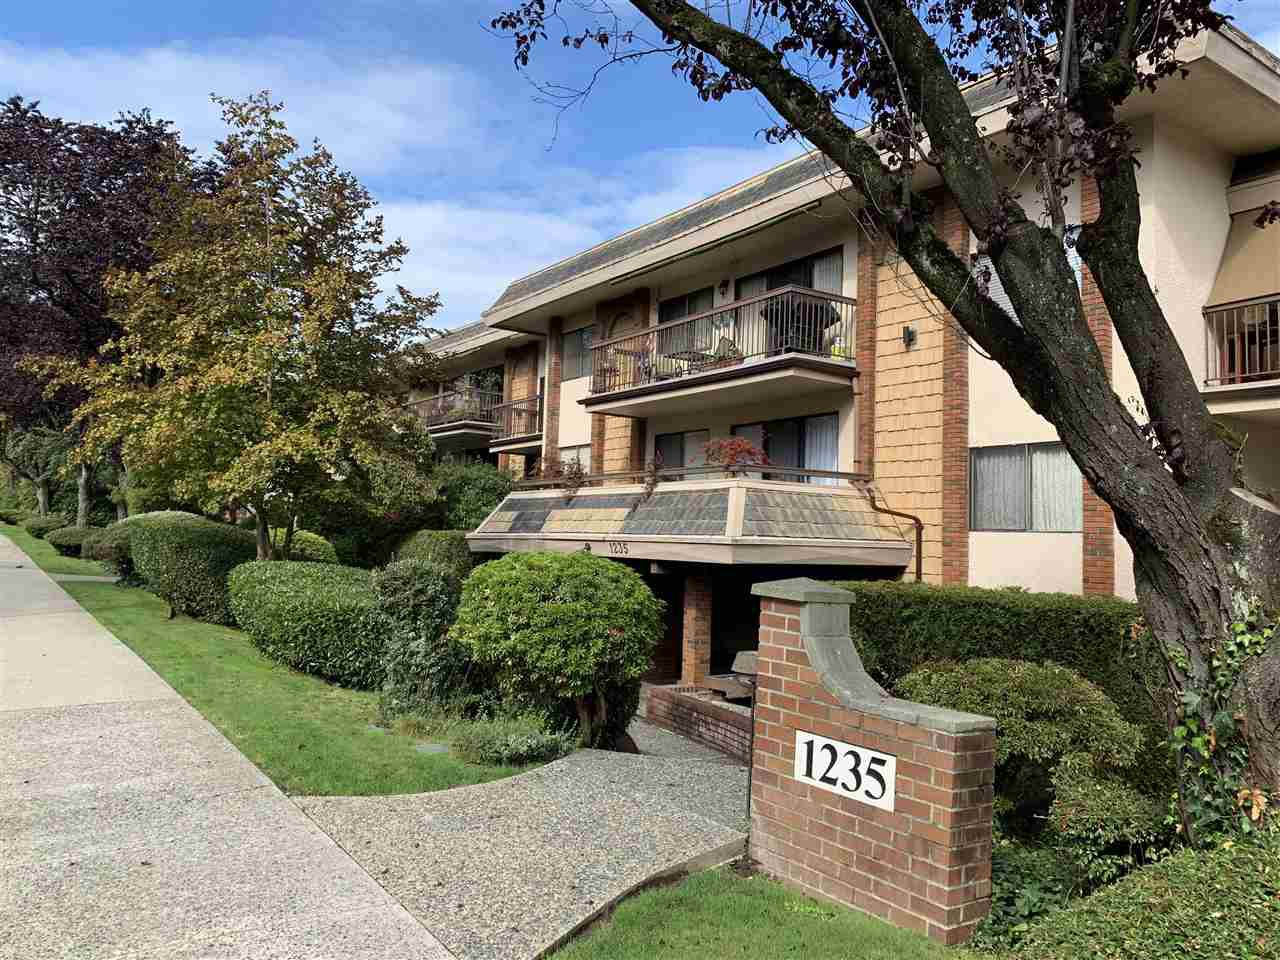 """Main Photo: 217 1235 W 15TH Avenue in Vancouver: Fairview VW Condo for sale in """"Shaughnessy"""" (Vancouver West)  : MLS®# R2406247"""